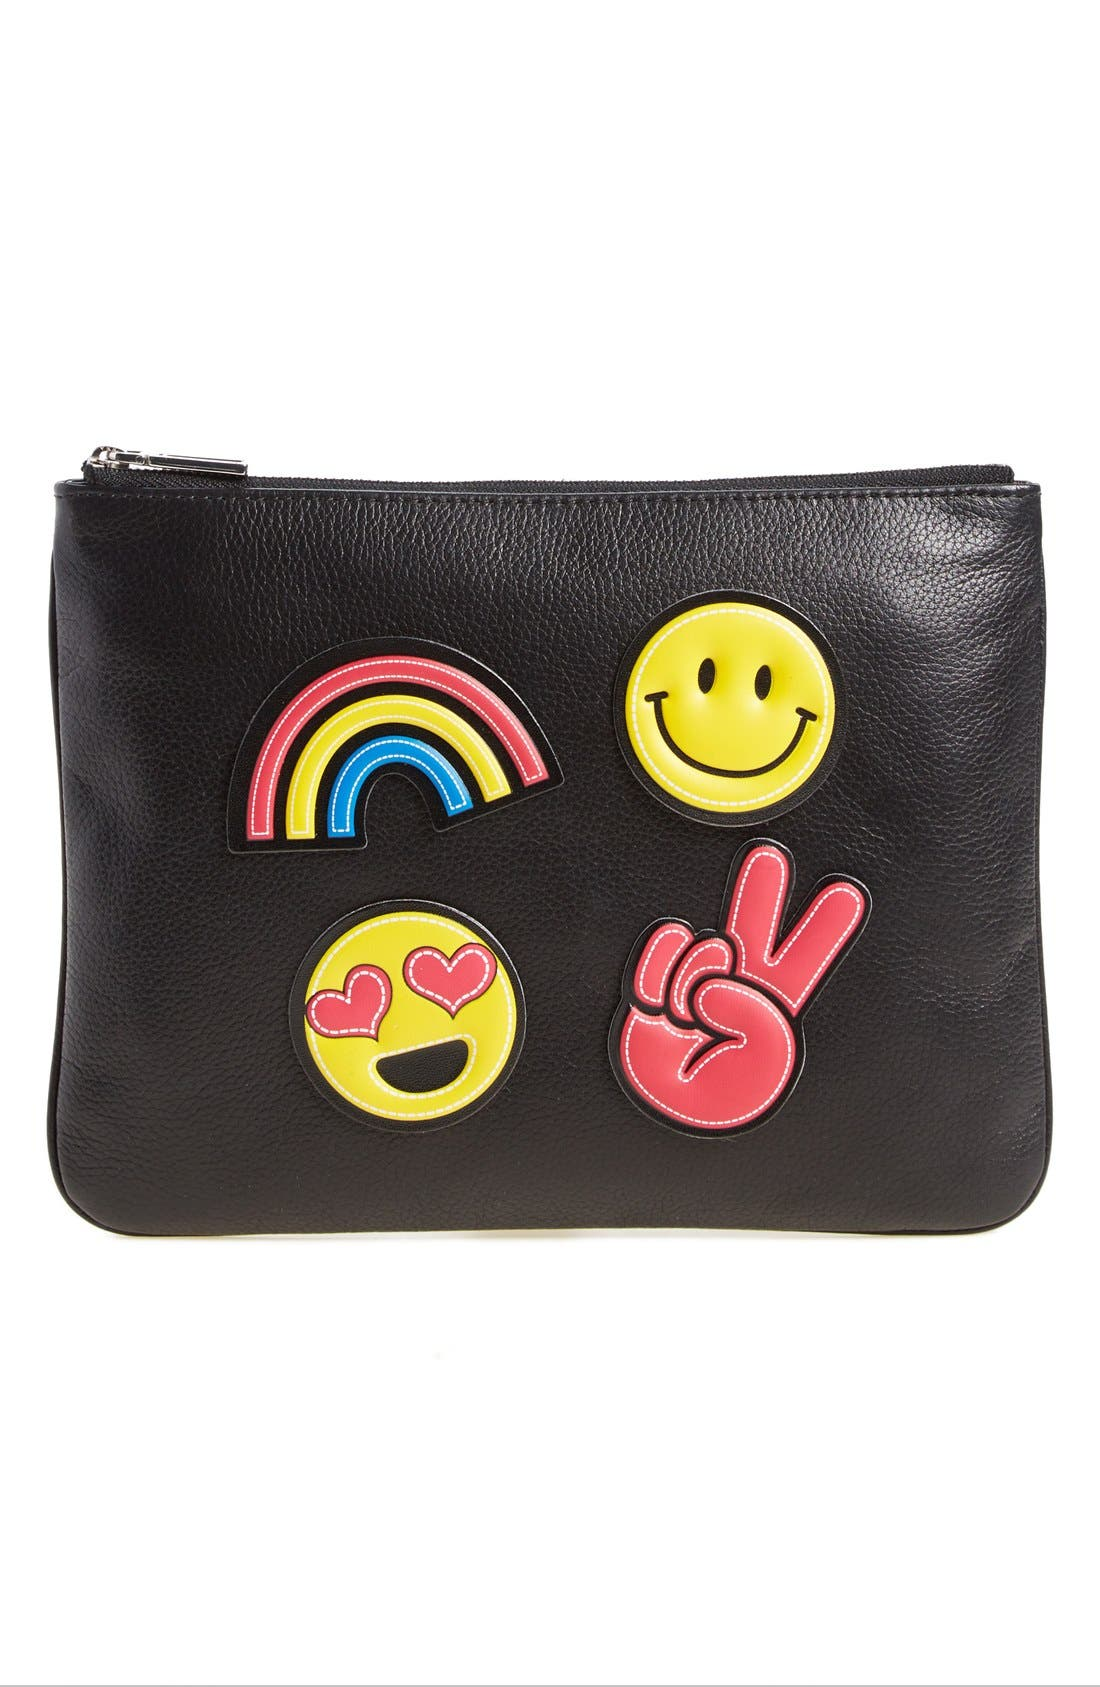 Alternate Image 1 Selected - Rebecca Minkoff 'Good Vibes' Customizable Leather Pouch with Emoji Stickers